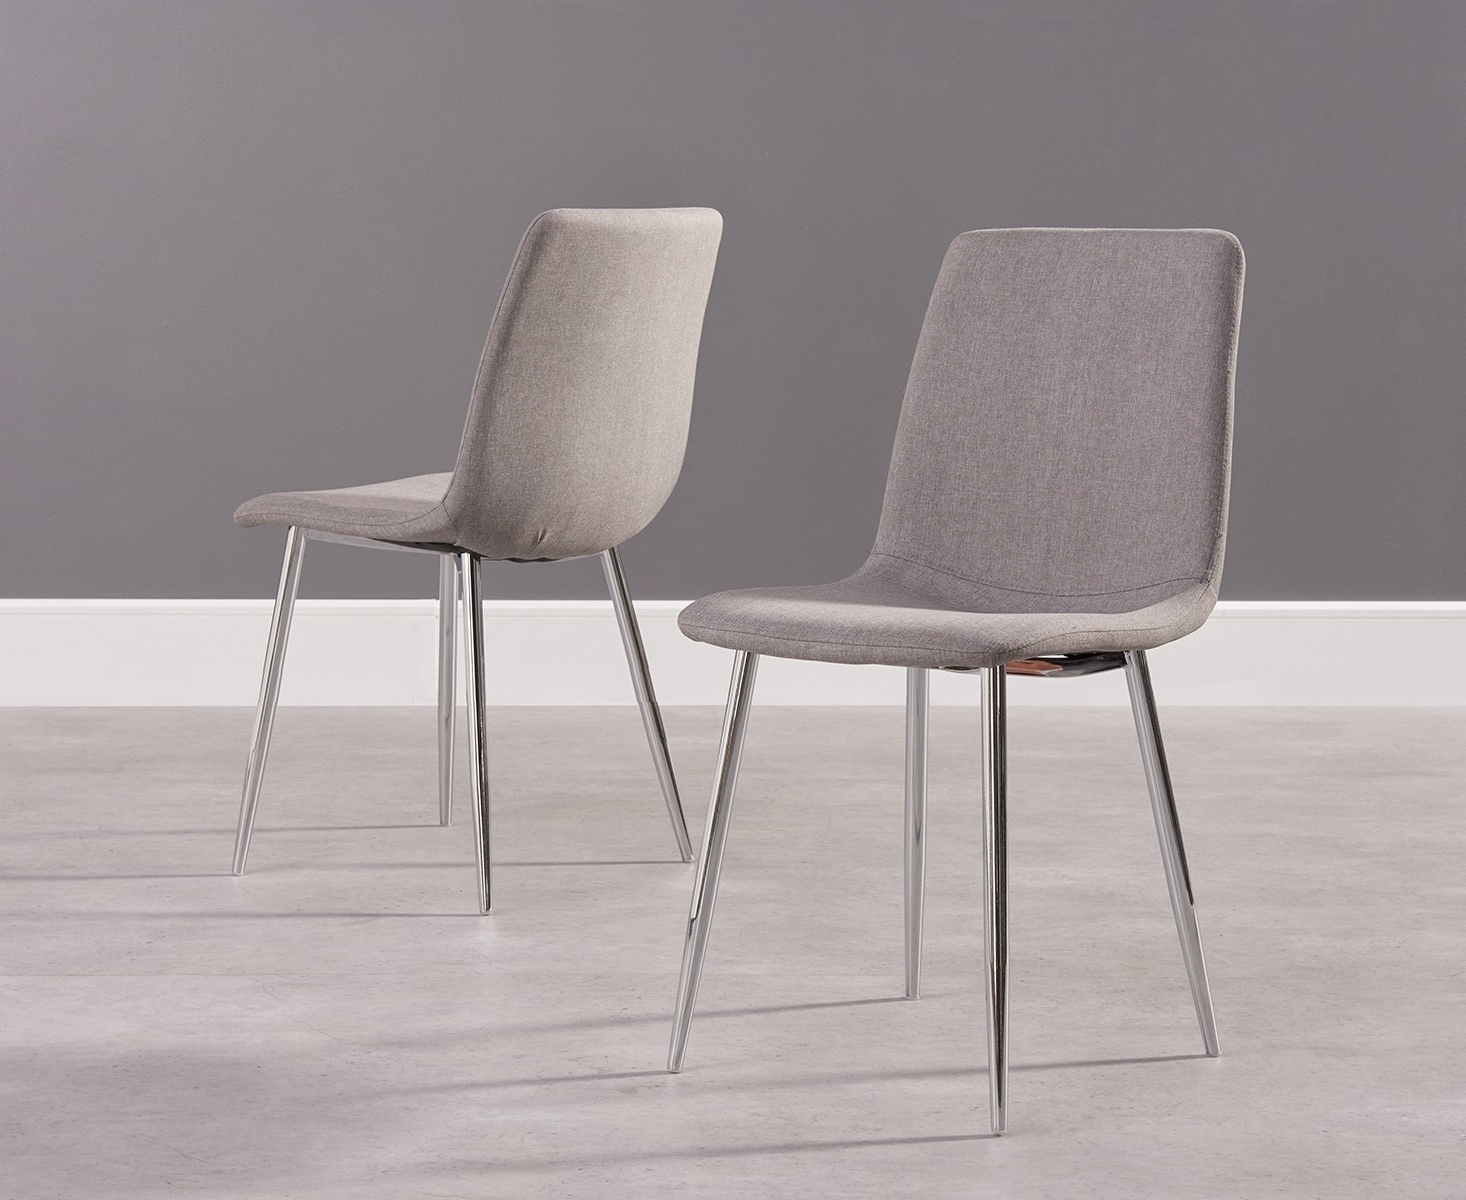 Chrome Dining Chairs Regarding Trendy Ellisa Grey Fabric Dining Chair With Chrome Legs (Pair) (View 15 of 25)